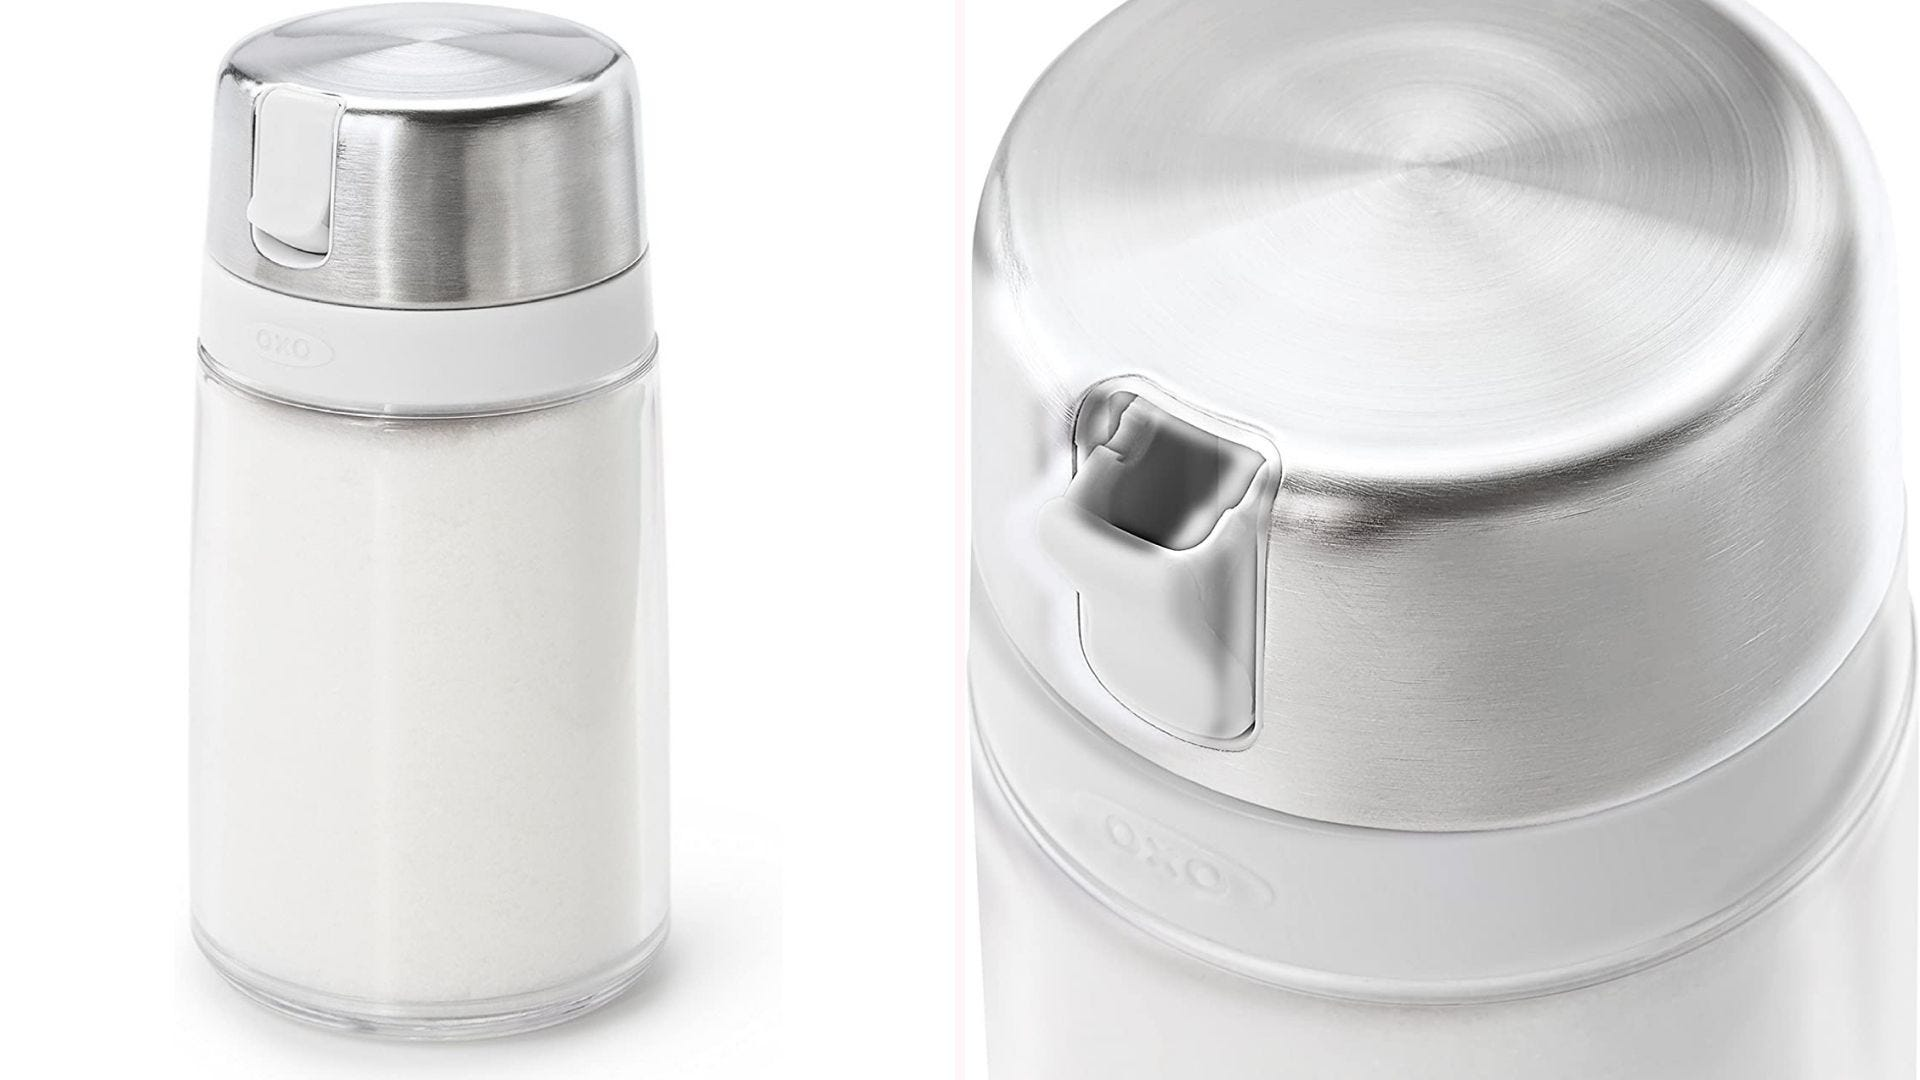 a small glass sugar dispenser with a stainless steel lid and a closeup of the pouring spout